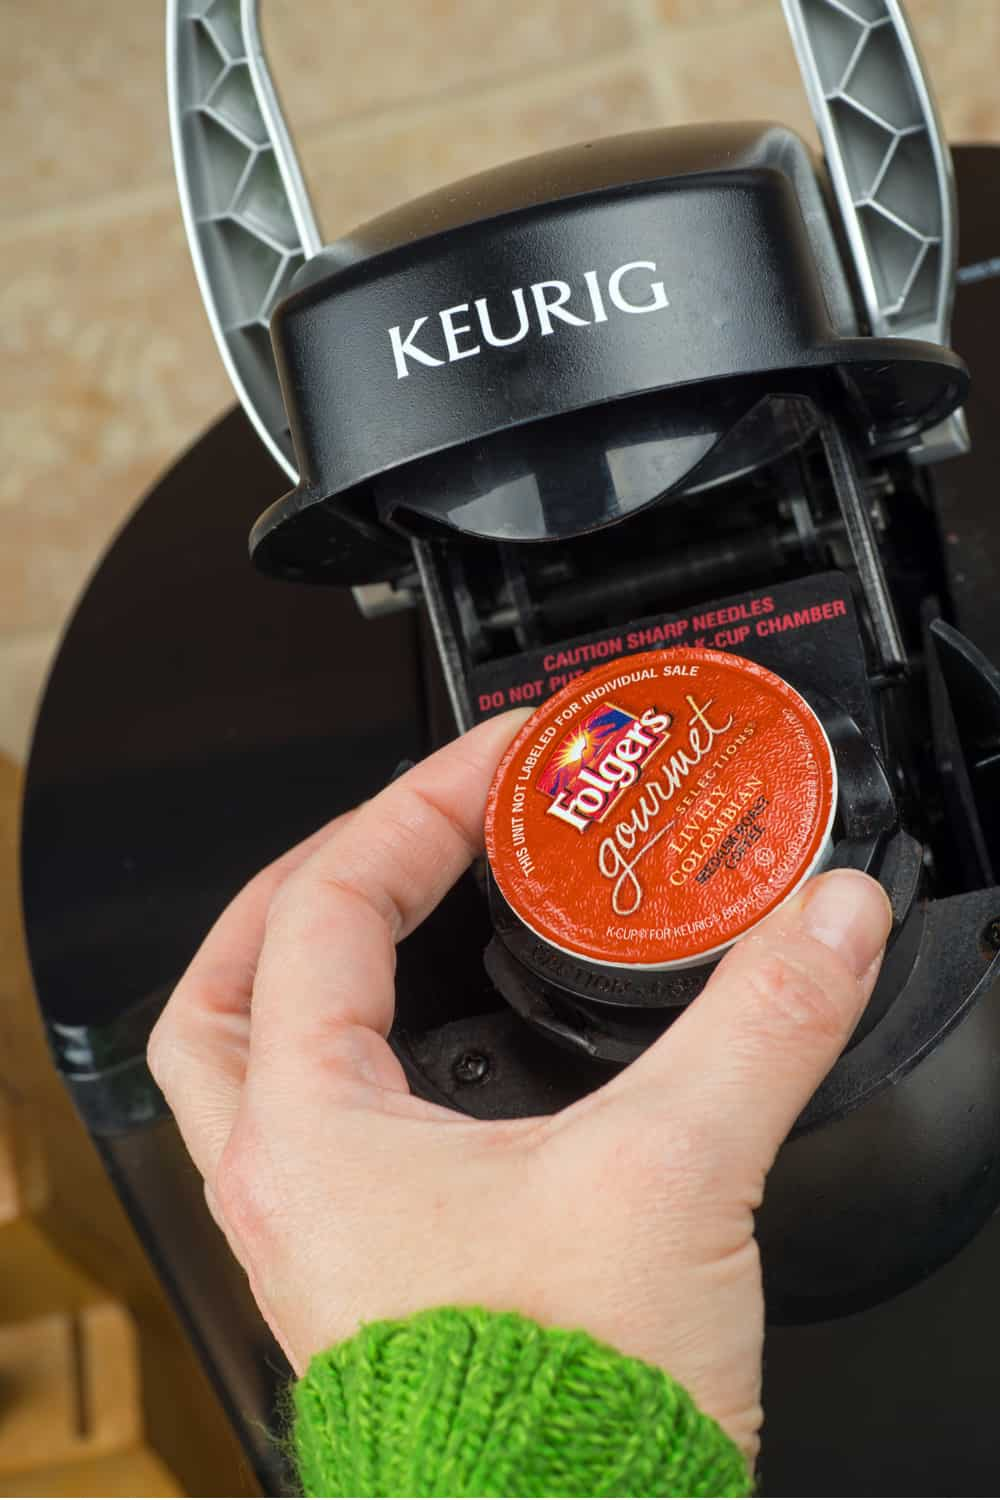 10 Easy Steps to Disassemble a Keurig